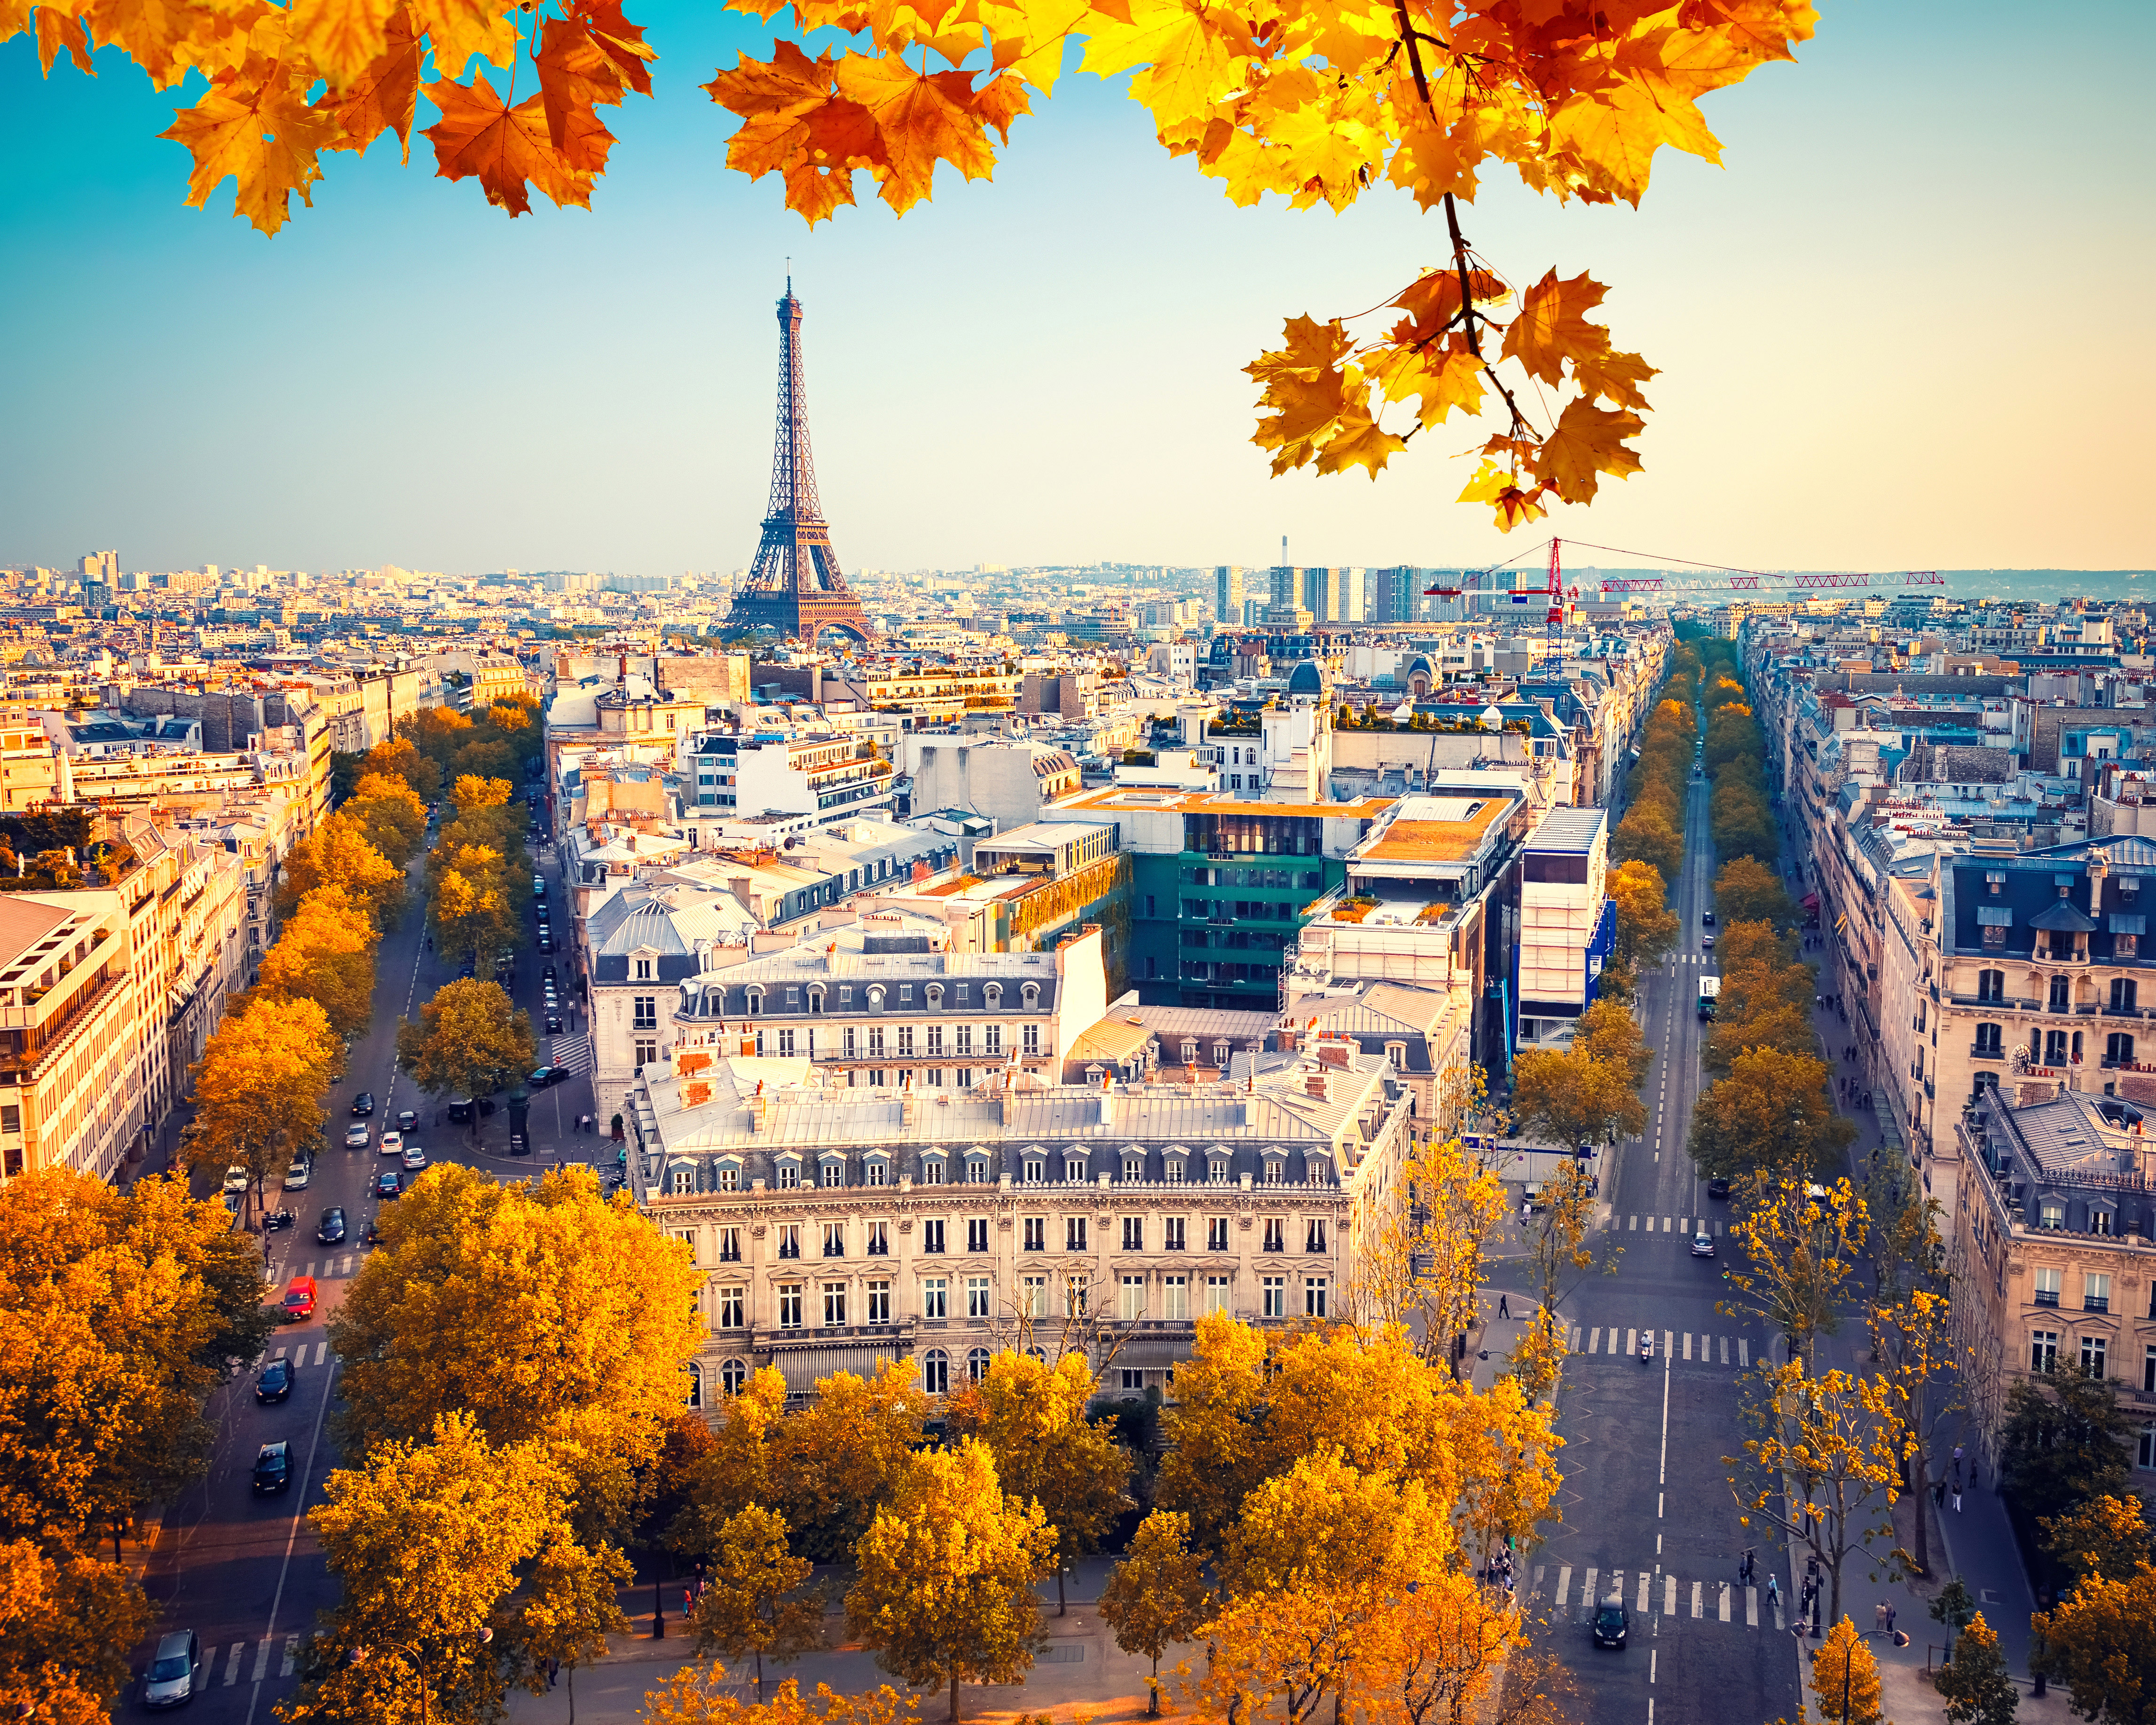 2048x2048 Eiffel Tower Paris City Autumn 4k 5k Ipad Air Hd 4k Wallpapers Images Backgrounds Photos And Pictures